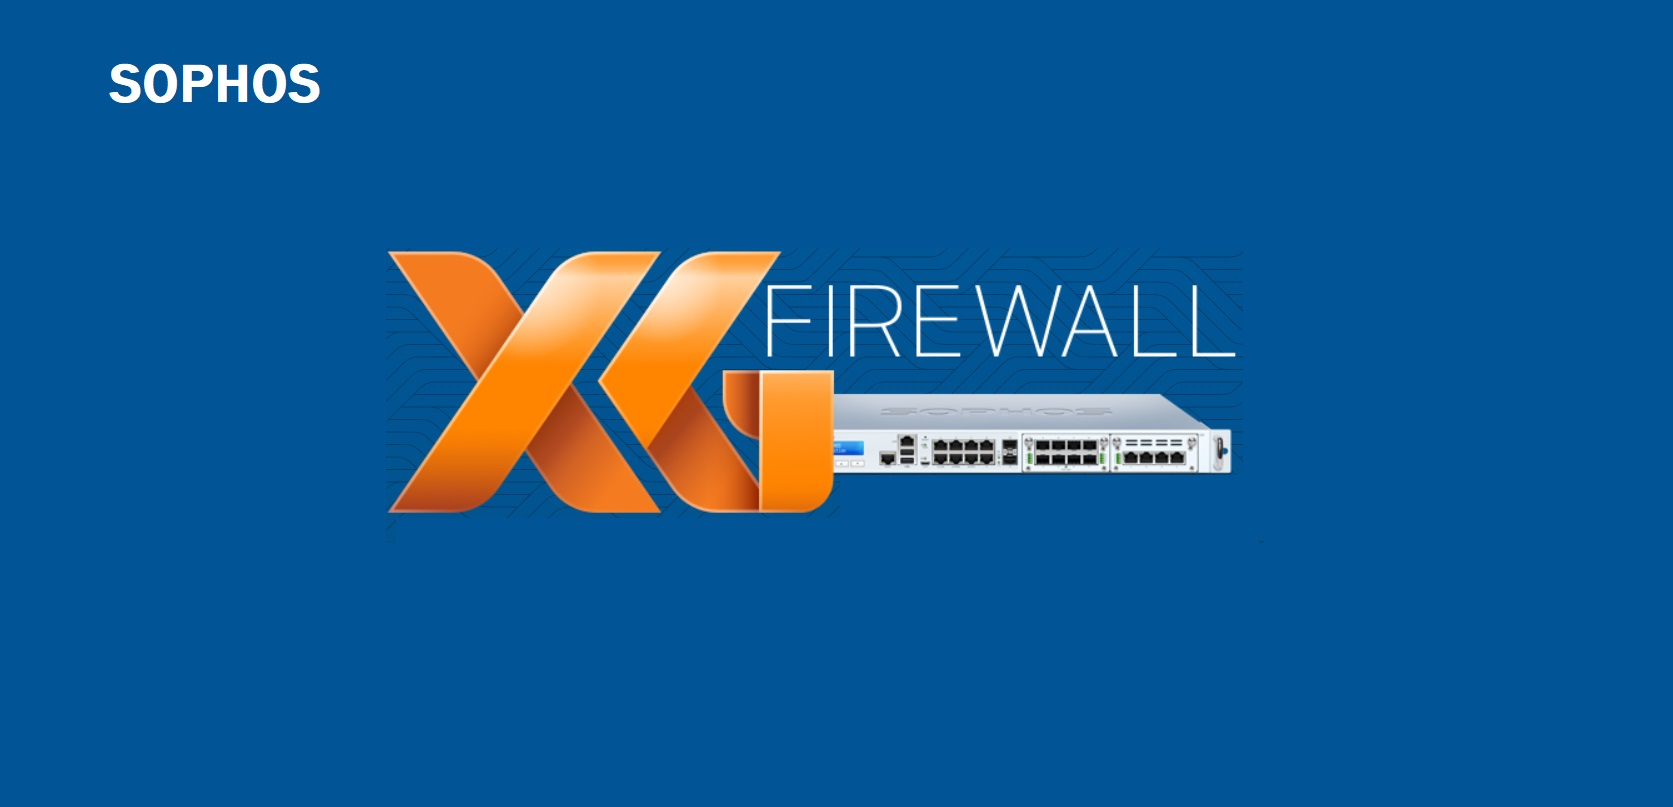 Sophos Security Training Sophos Xg Firewall Now Available Channel Post Mea